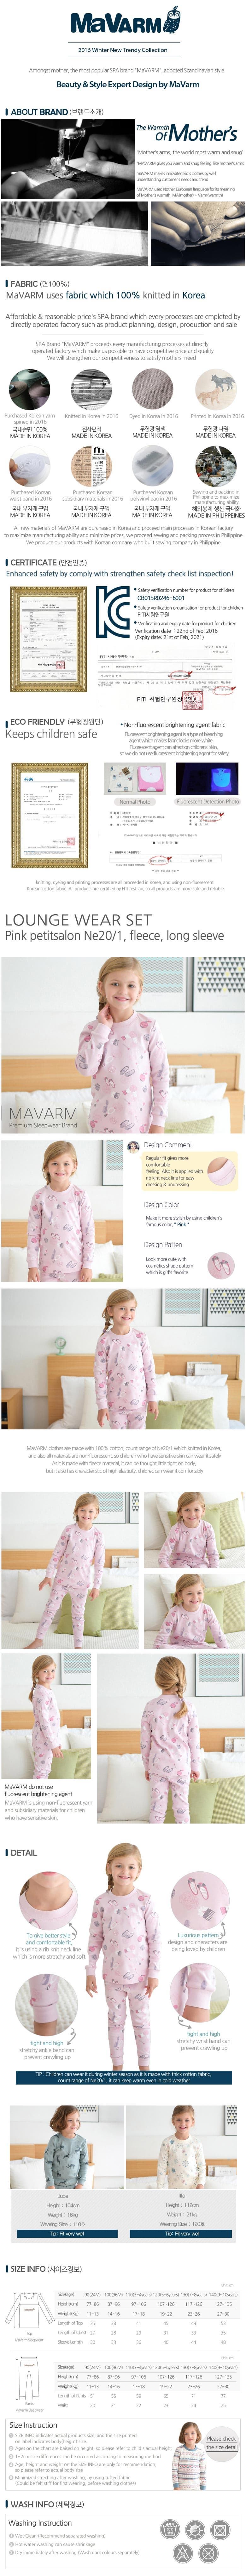 MAVARM Kids clothes_Pink Petite Salon